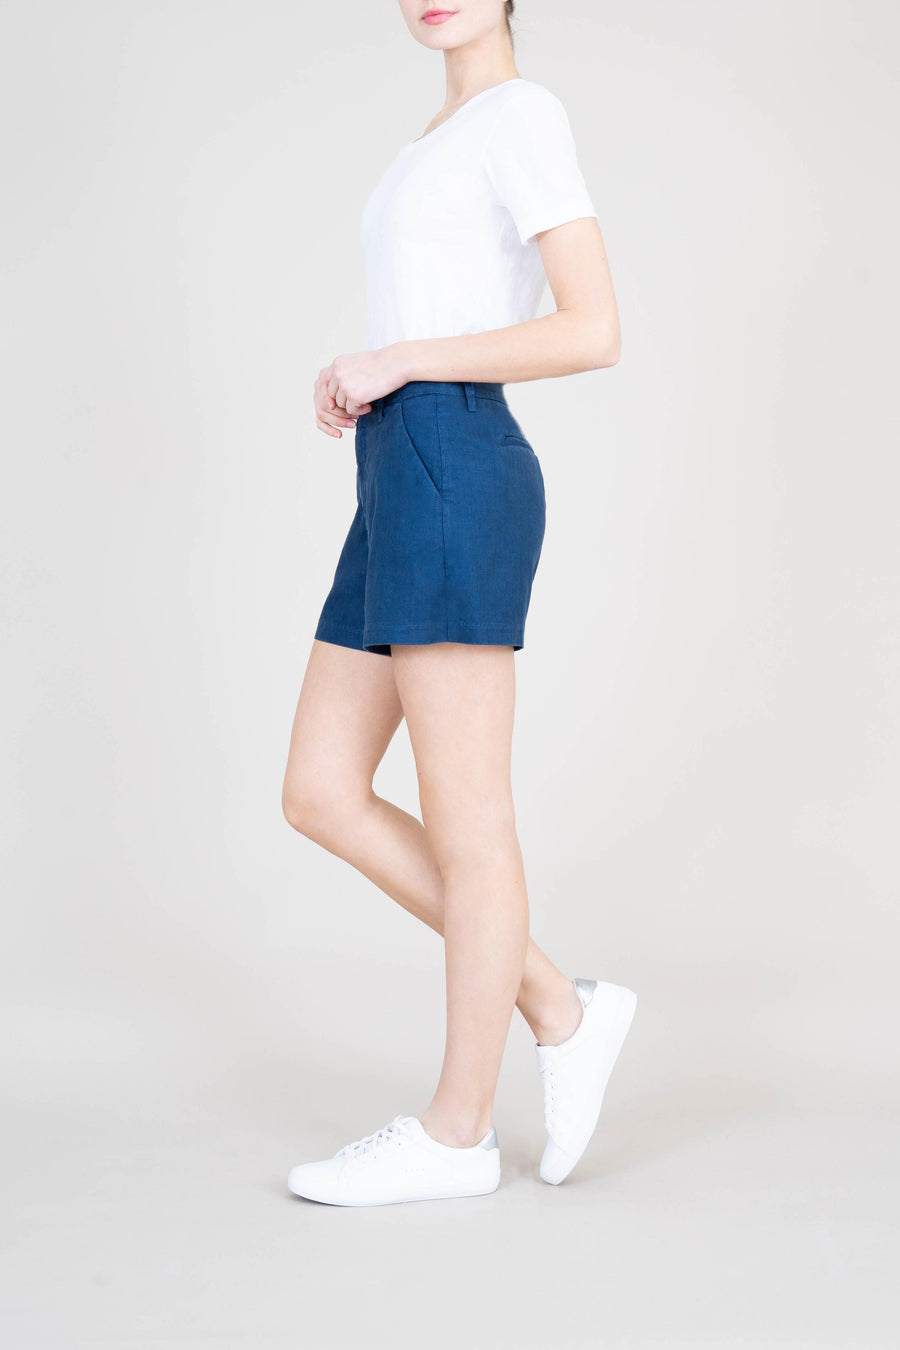 Lyndie Trouser Short - level99jeans